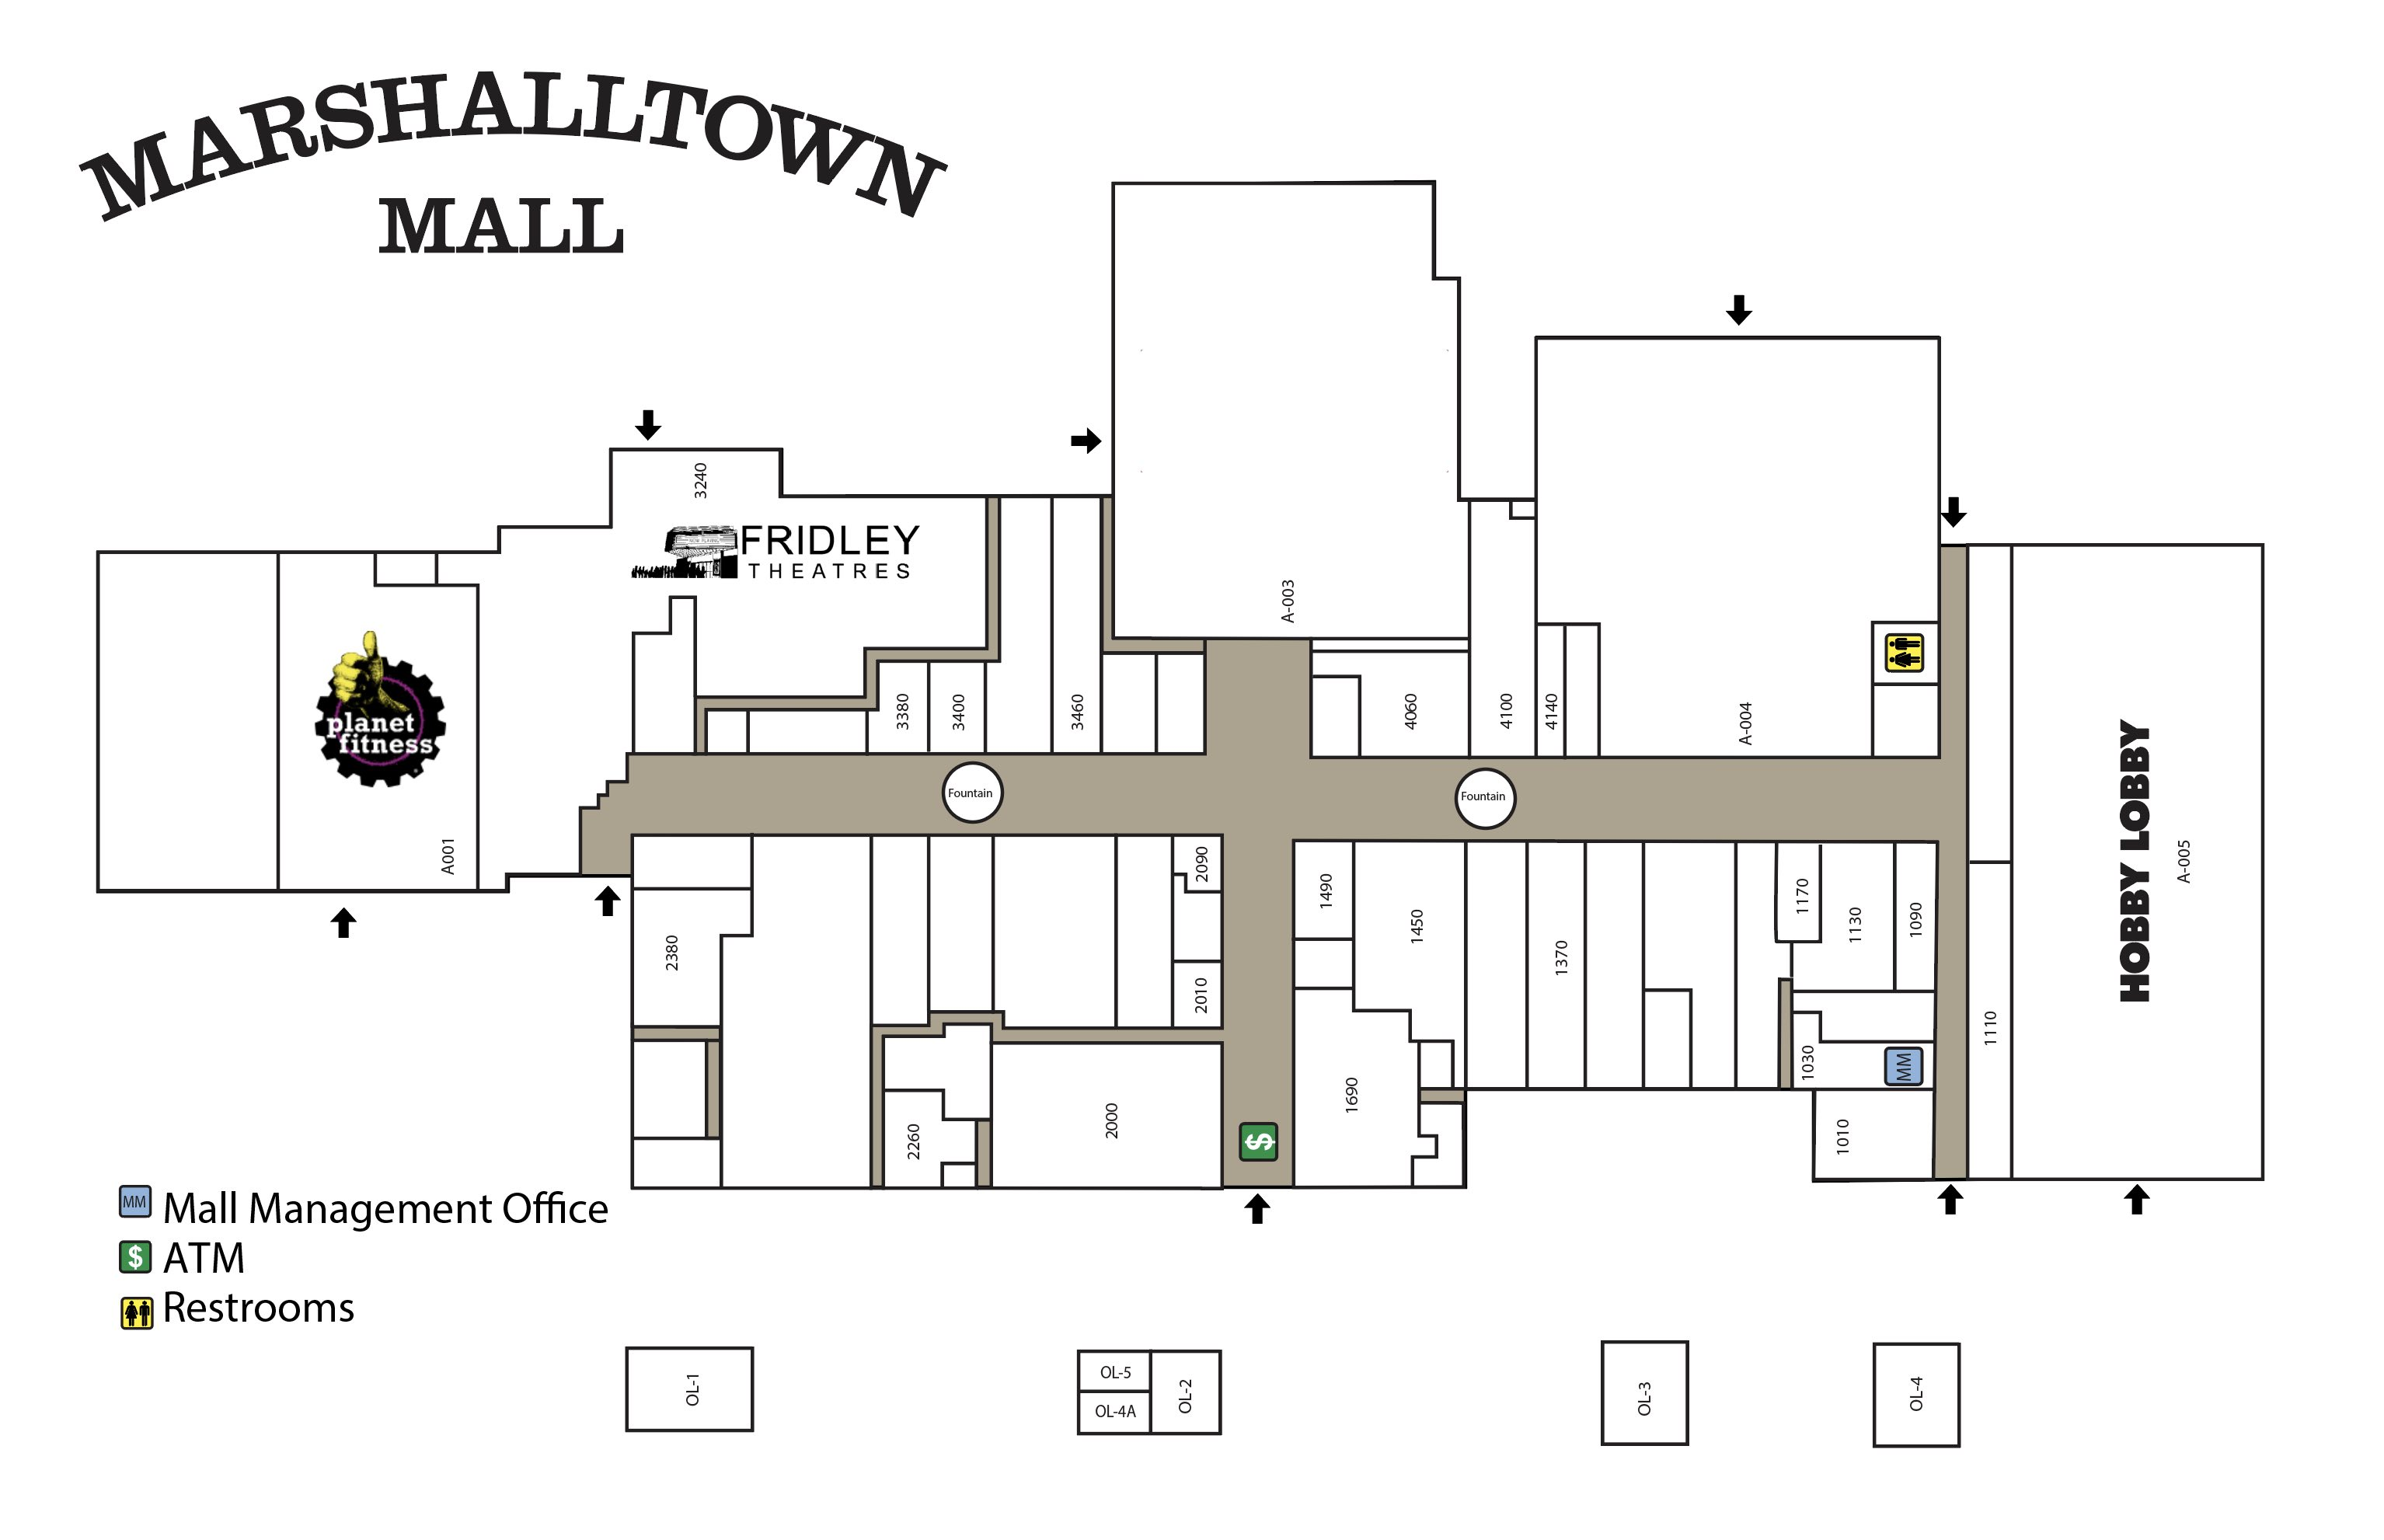 Map of the stores in Marshalltown Mall